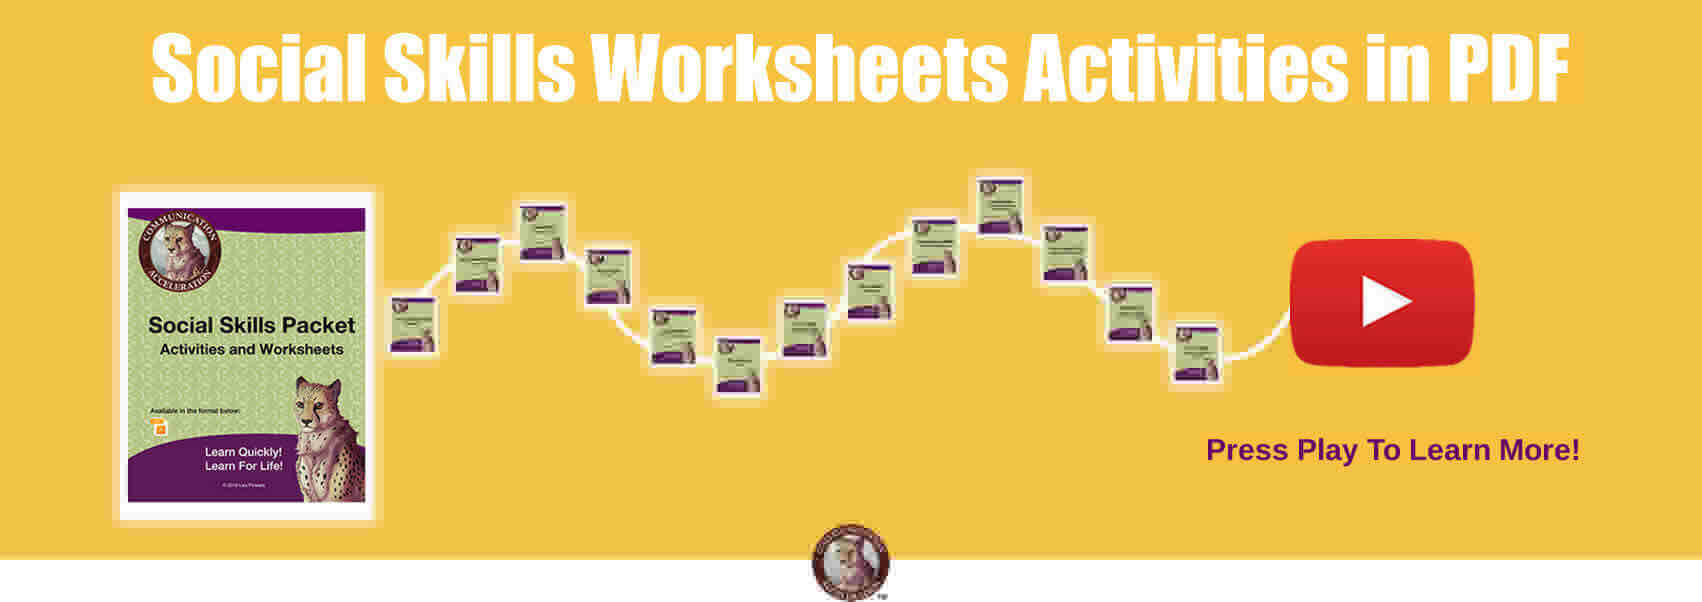 Social Skills Worksheets & Activities in PDF - Click to learn more